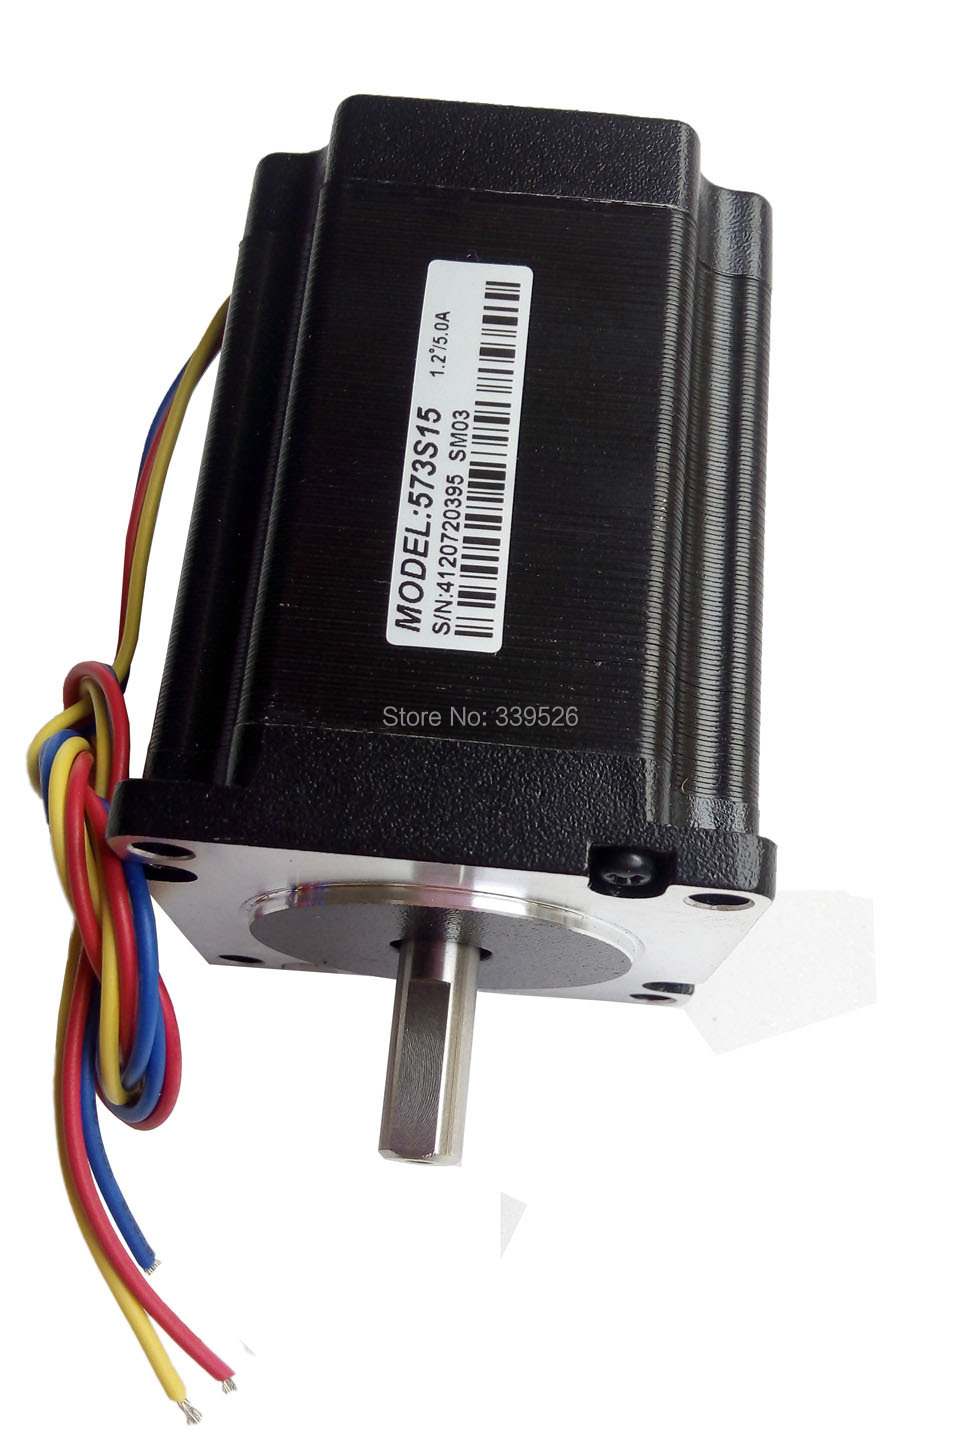 Stepper Motor 573s15 driver 3nd583 3phase 1.5nm for y axis for co2 laser cutting machine leadshine 2 phase stepping motor drive ma860h for laser engraving cutting machine stepper motor driver